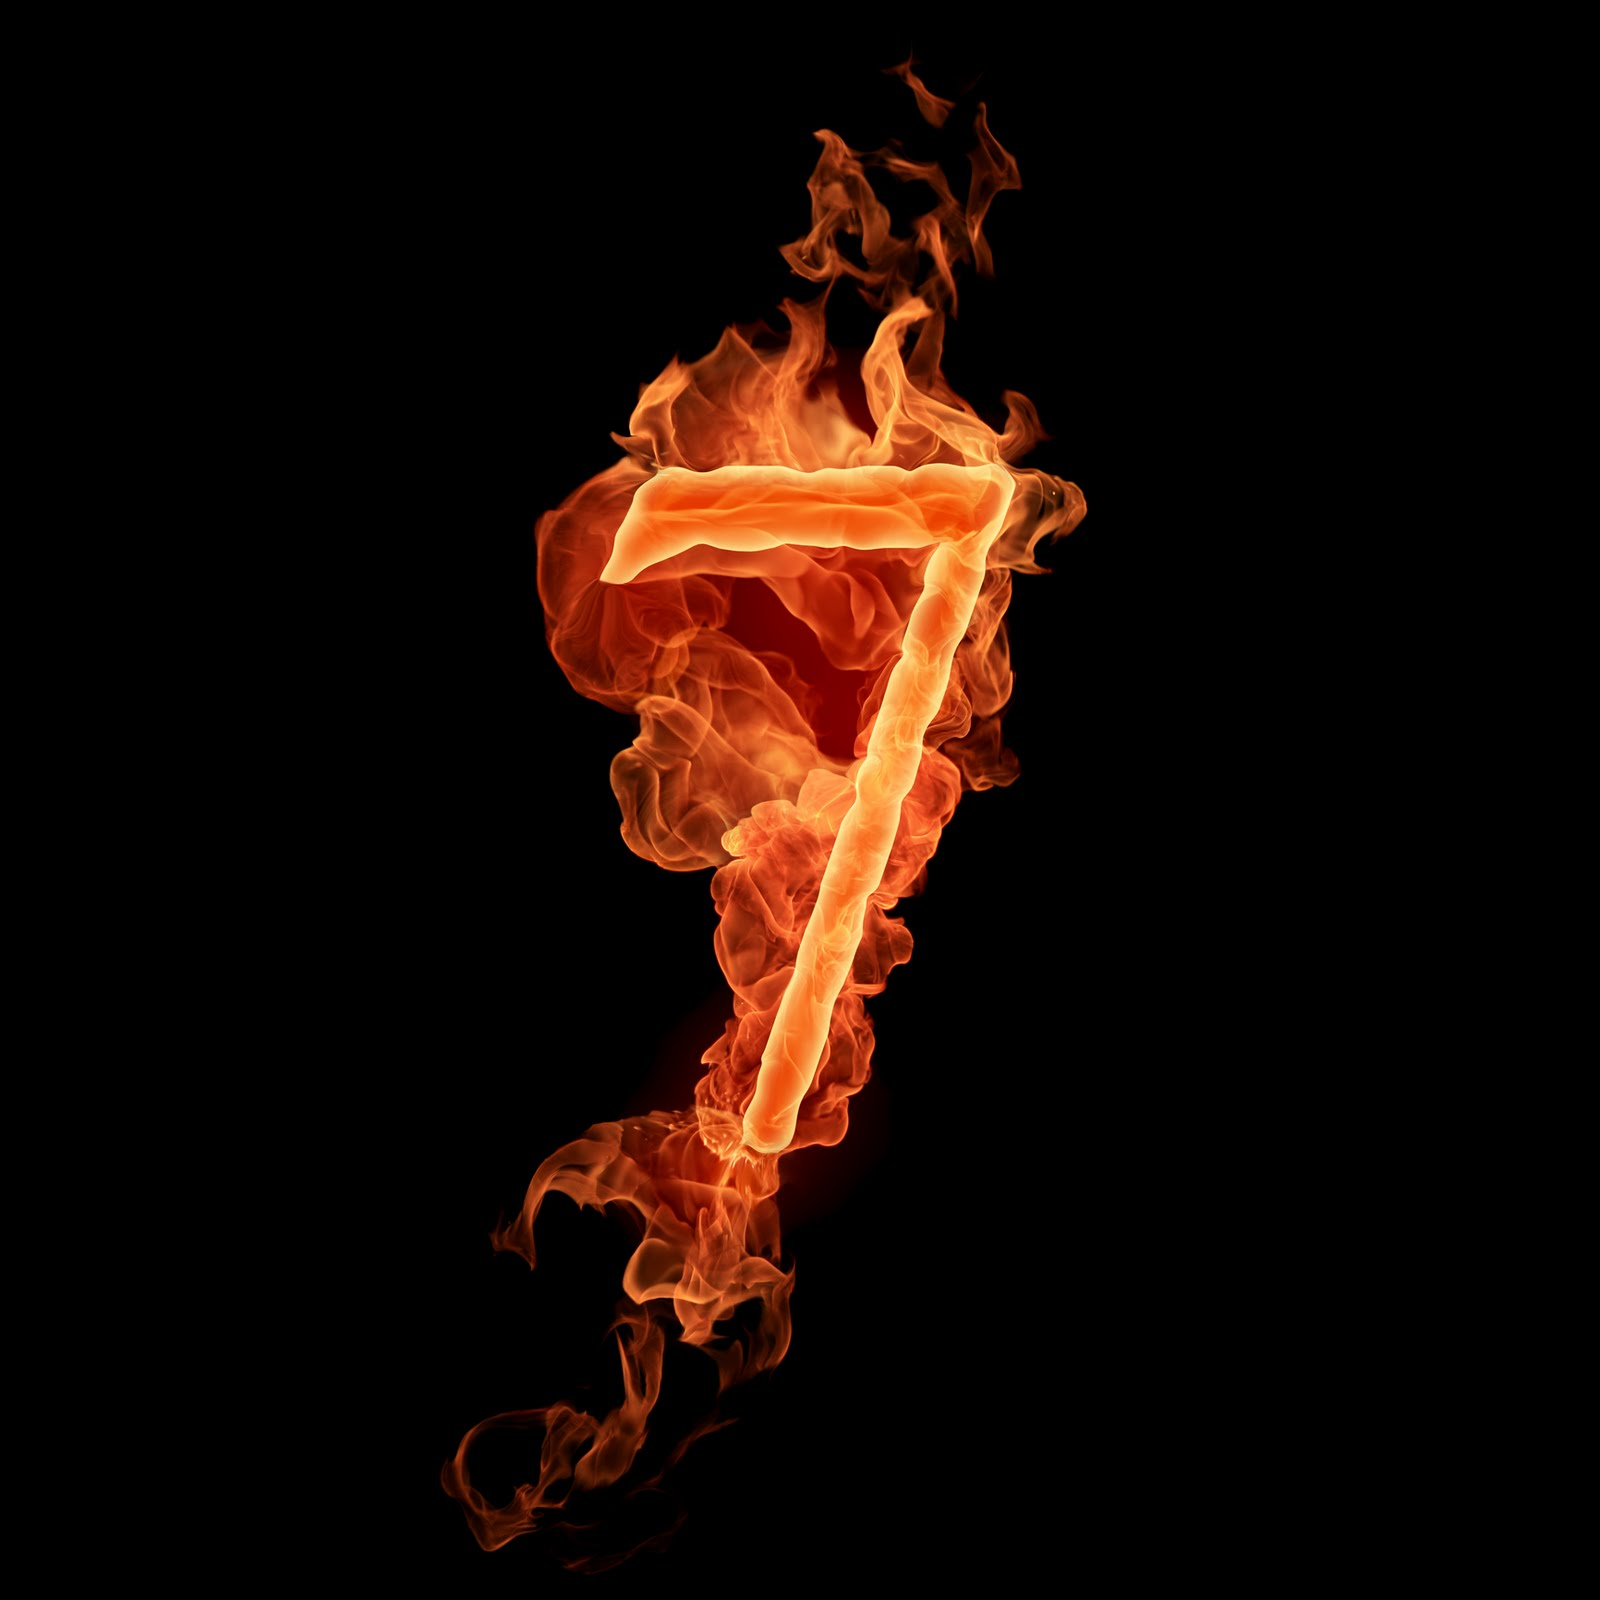 db07a6594e9f68 coolbestpics: Fire letters and alphabets